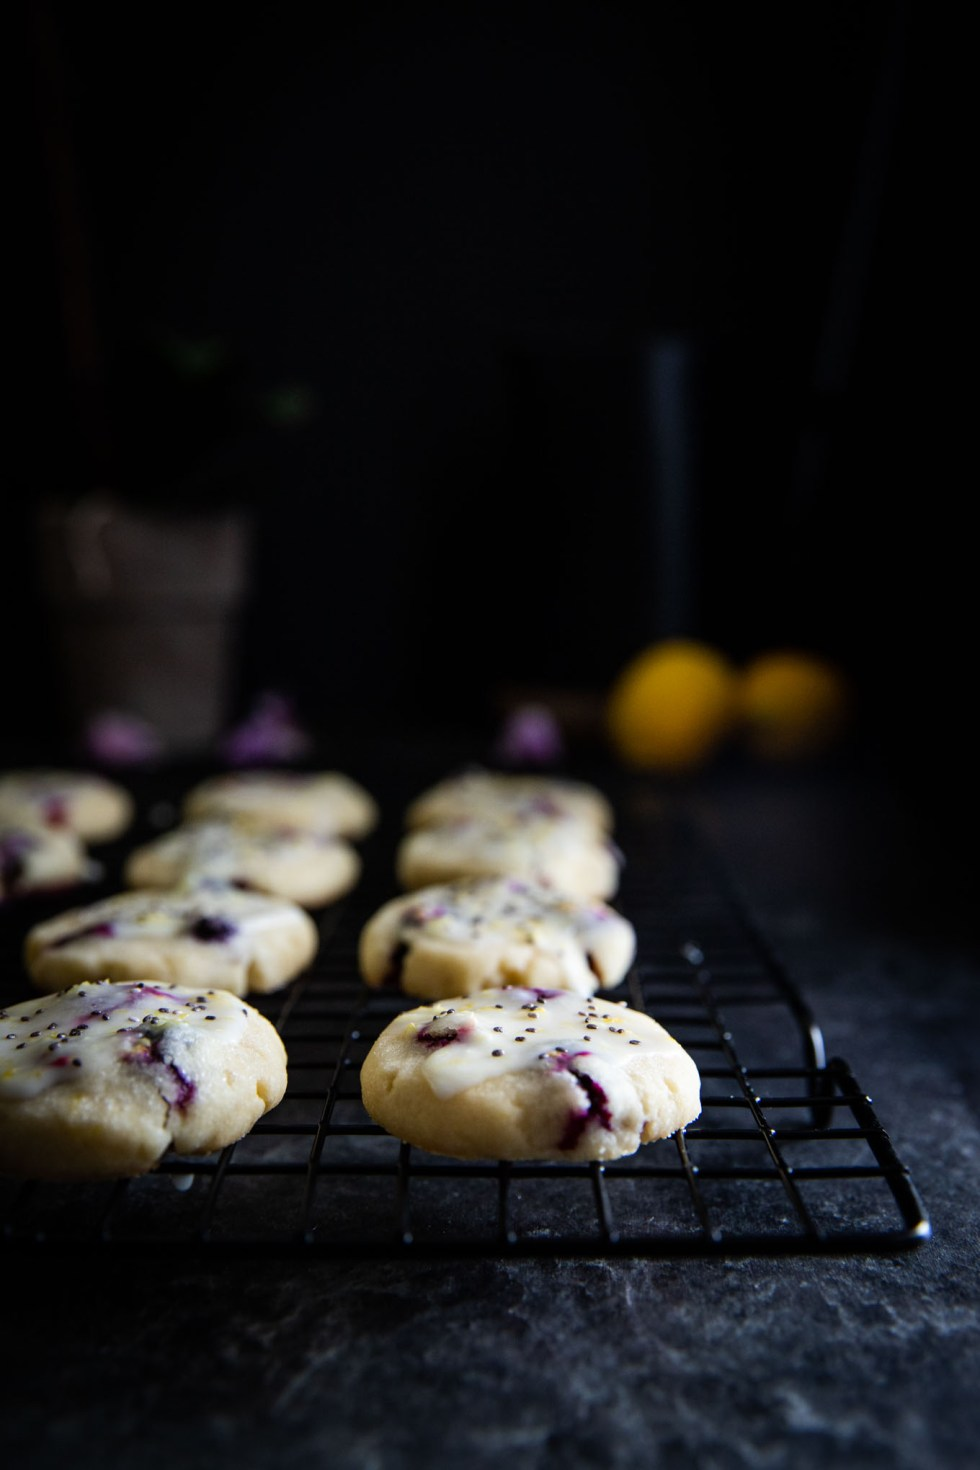 Delicious chia lemon blueberry cookies with bright blueberries, lemon glaze, and chia seeds! These sugar cookies are easy to make and perfect for sharing!